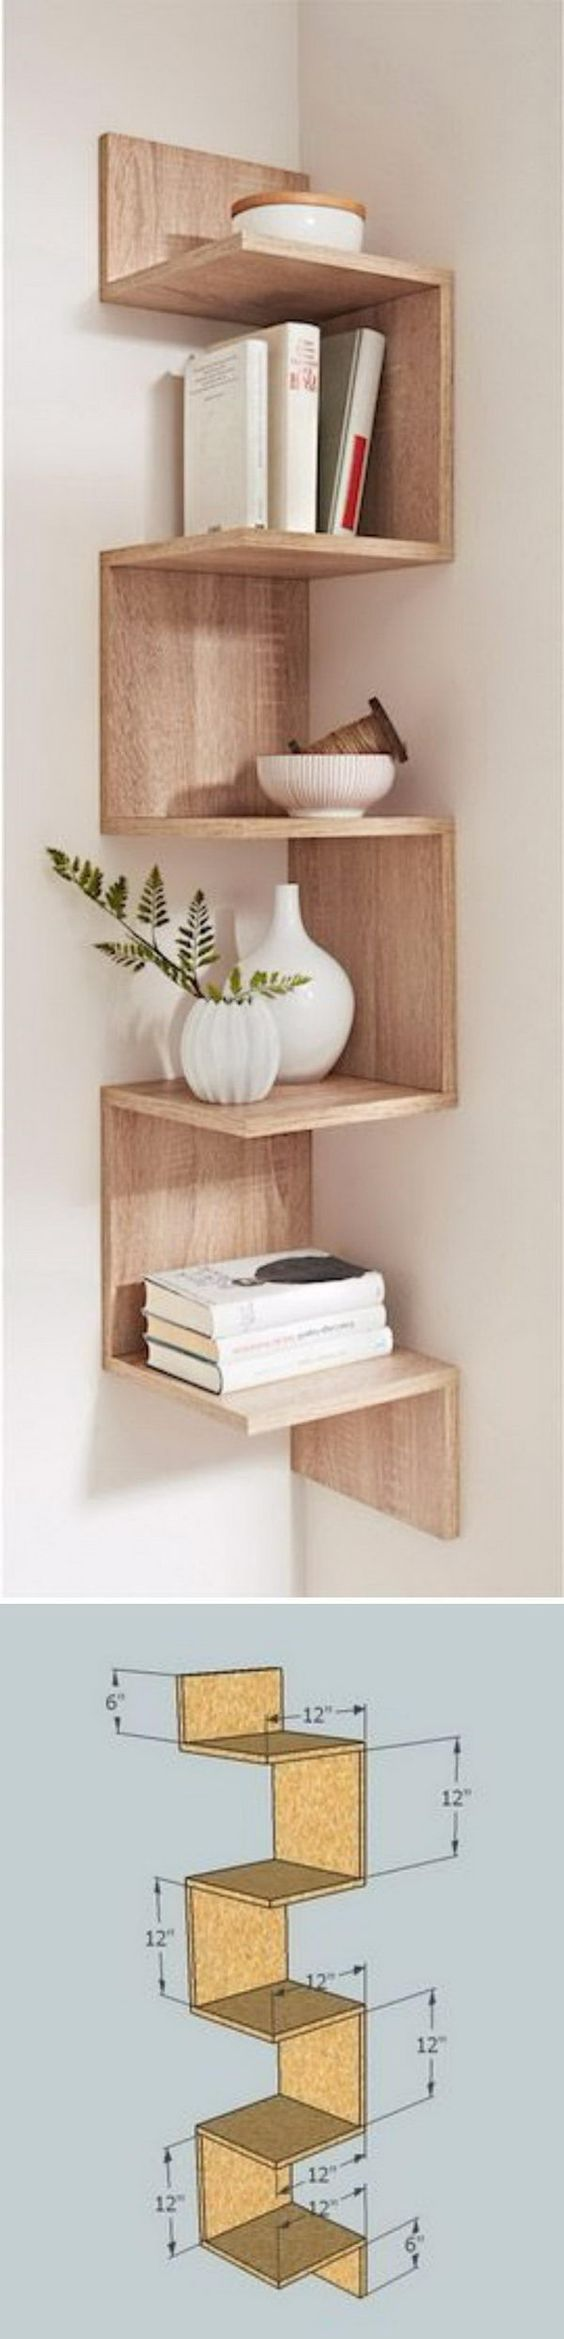 Best 25 Diy Shelving Ideas On Pinterest Wall Shelves Shelves And Shelving Ideas